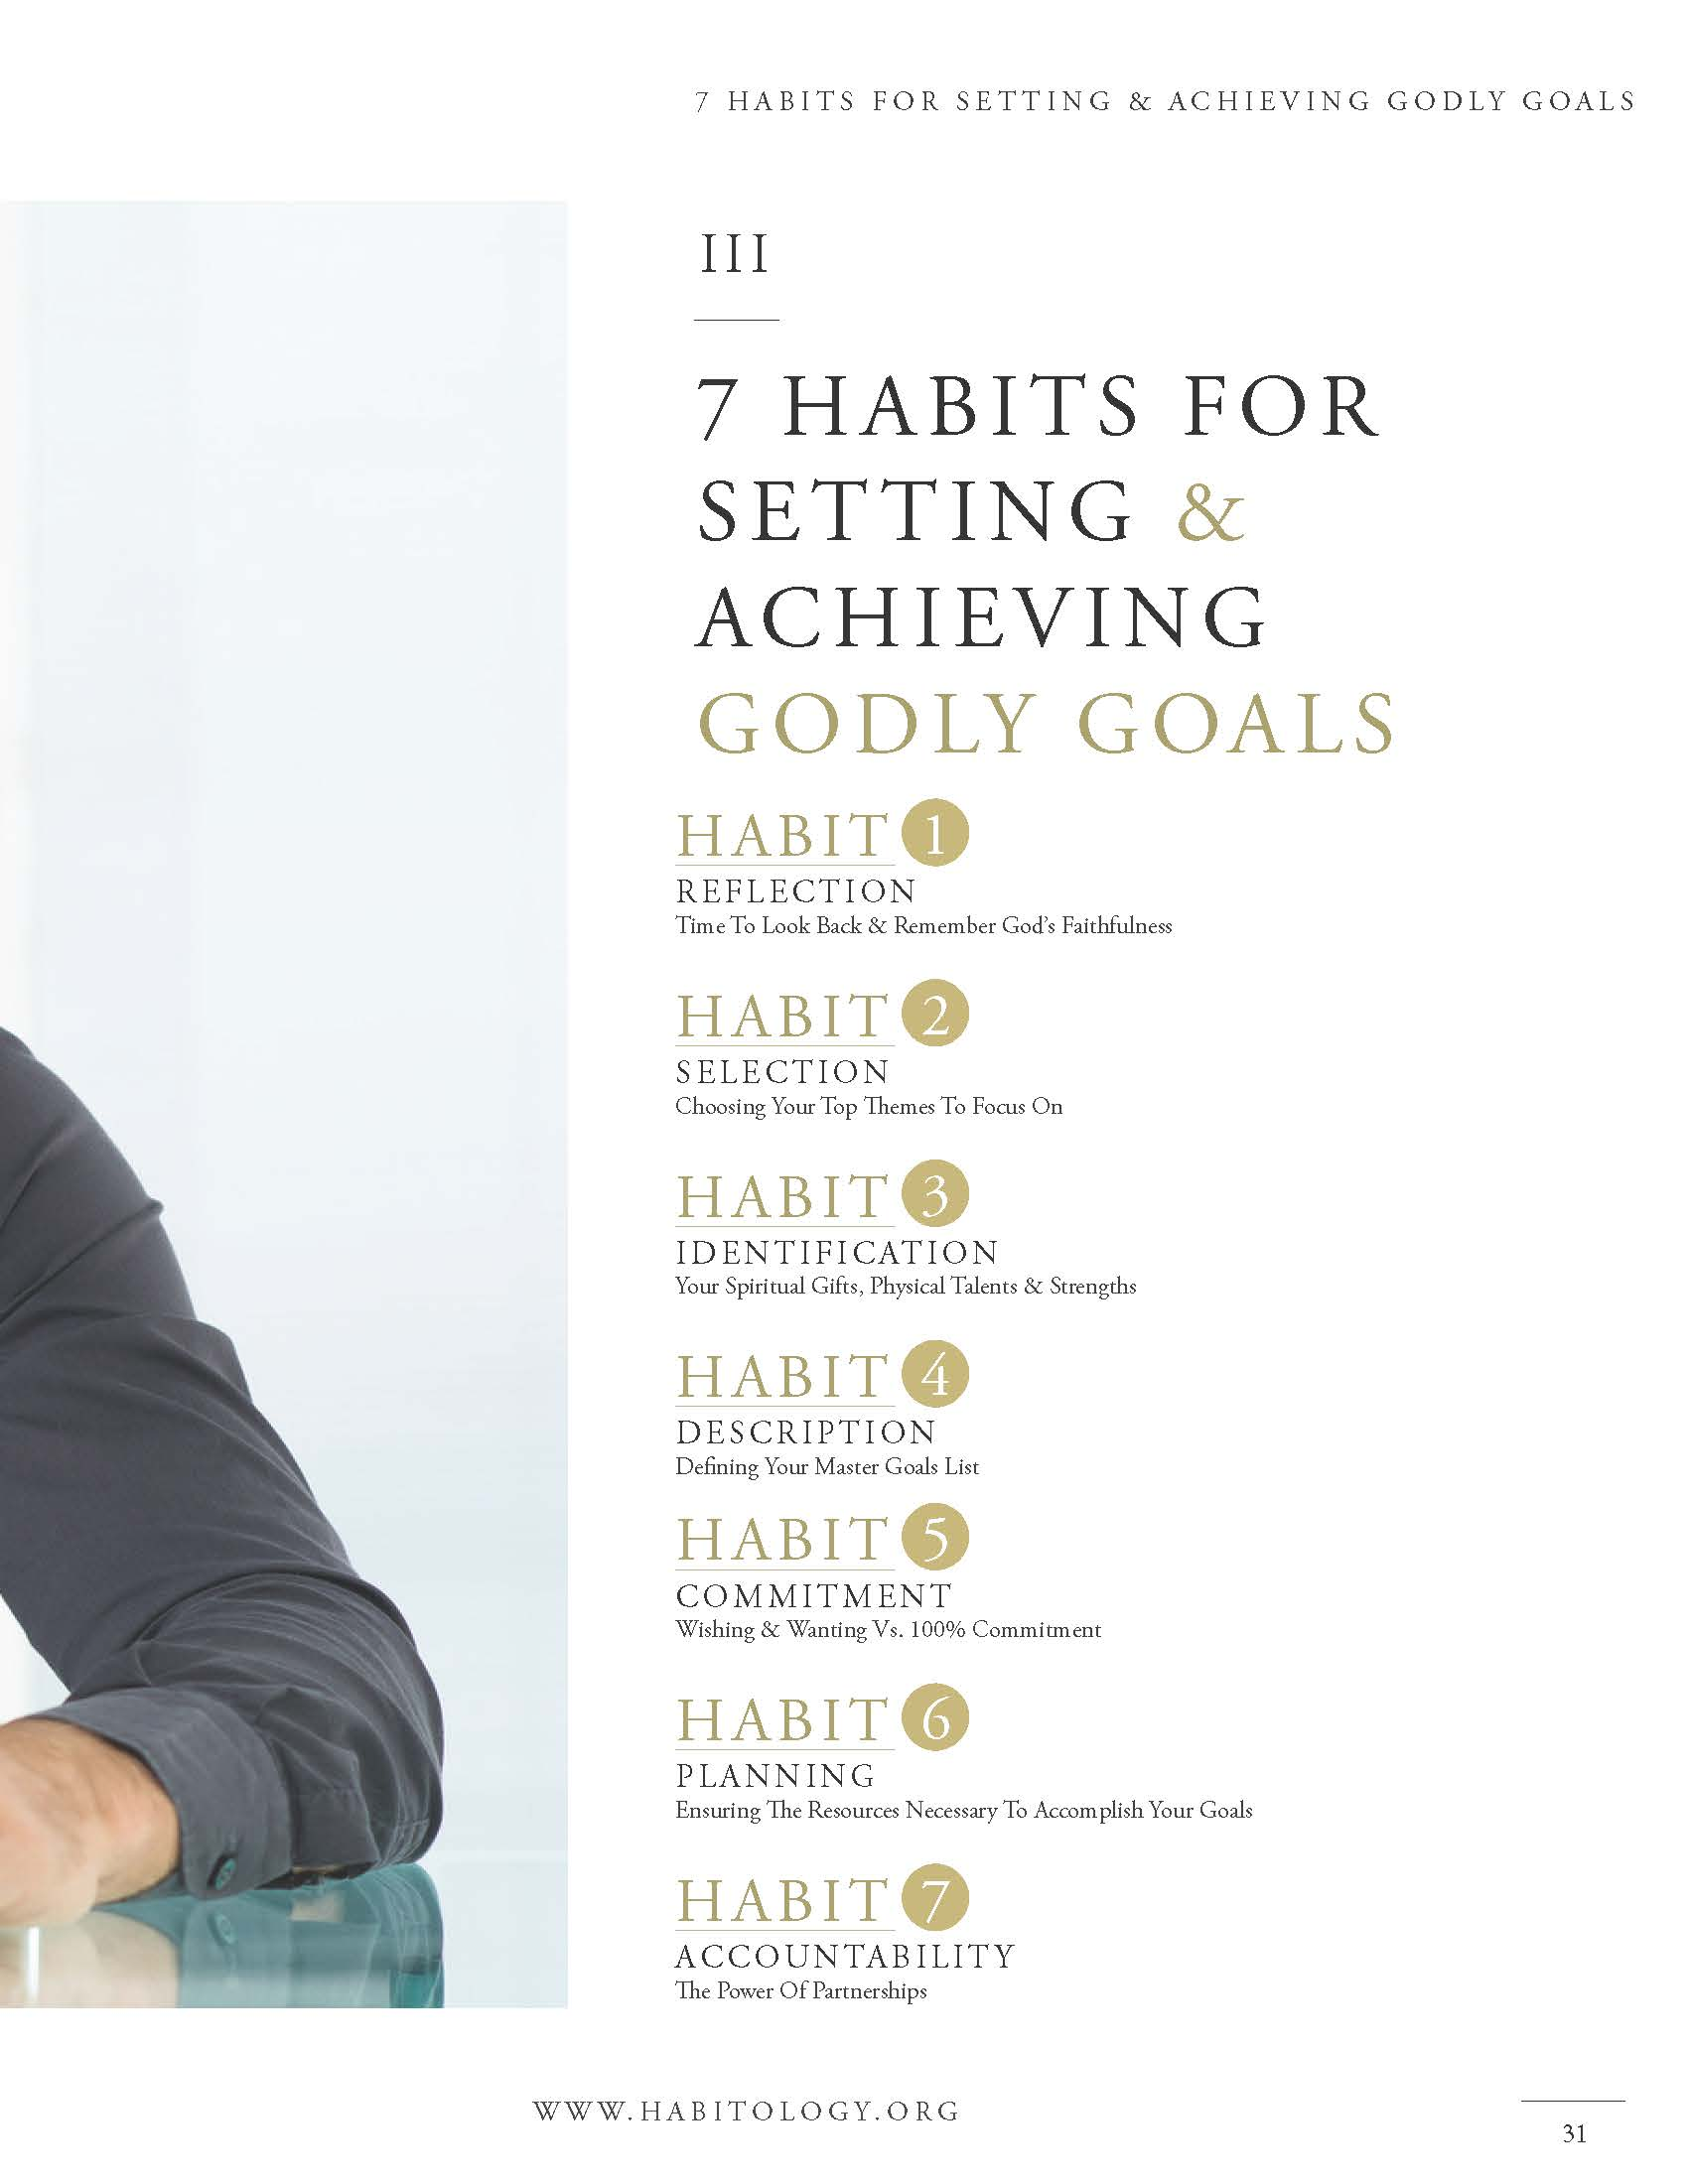 Habitology 7 Habits for Setting and Achieving Godly Goals, V7, 06-27-17 Page 31